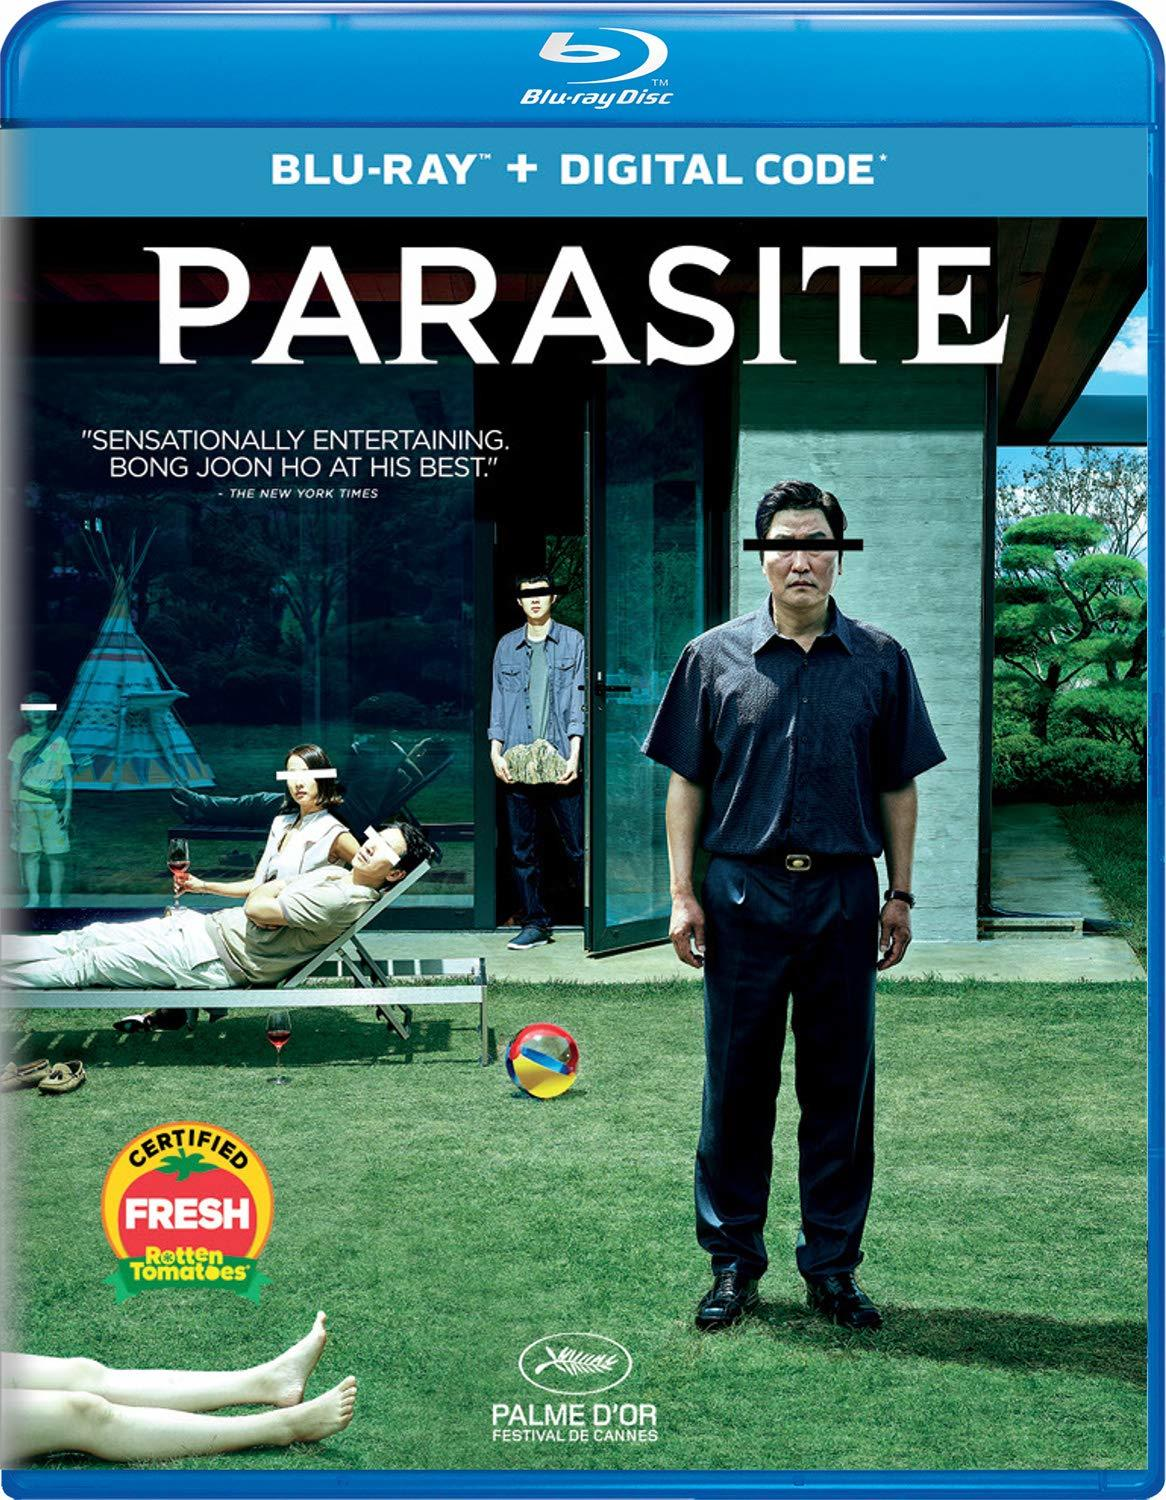 Parasite, now available to own on Blu-ray and Digital